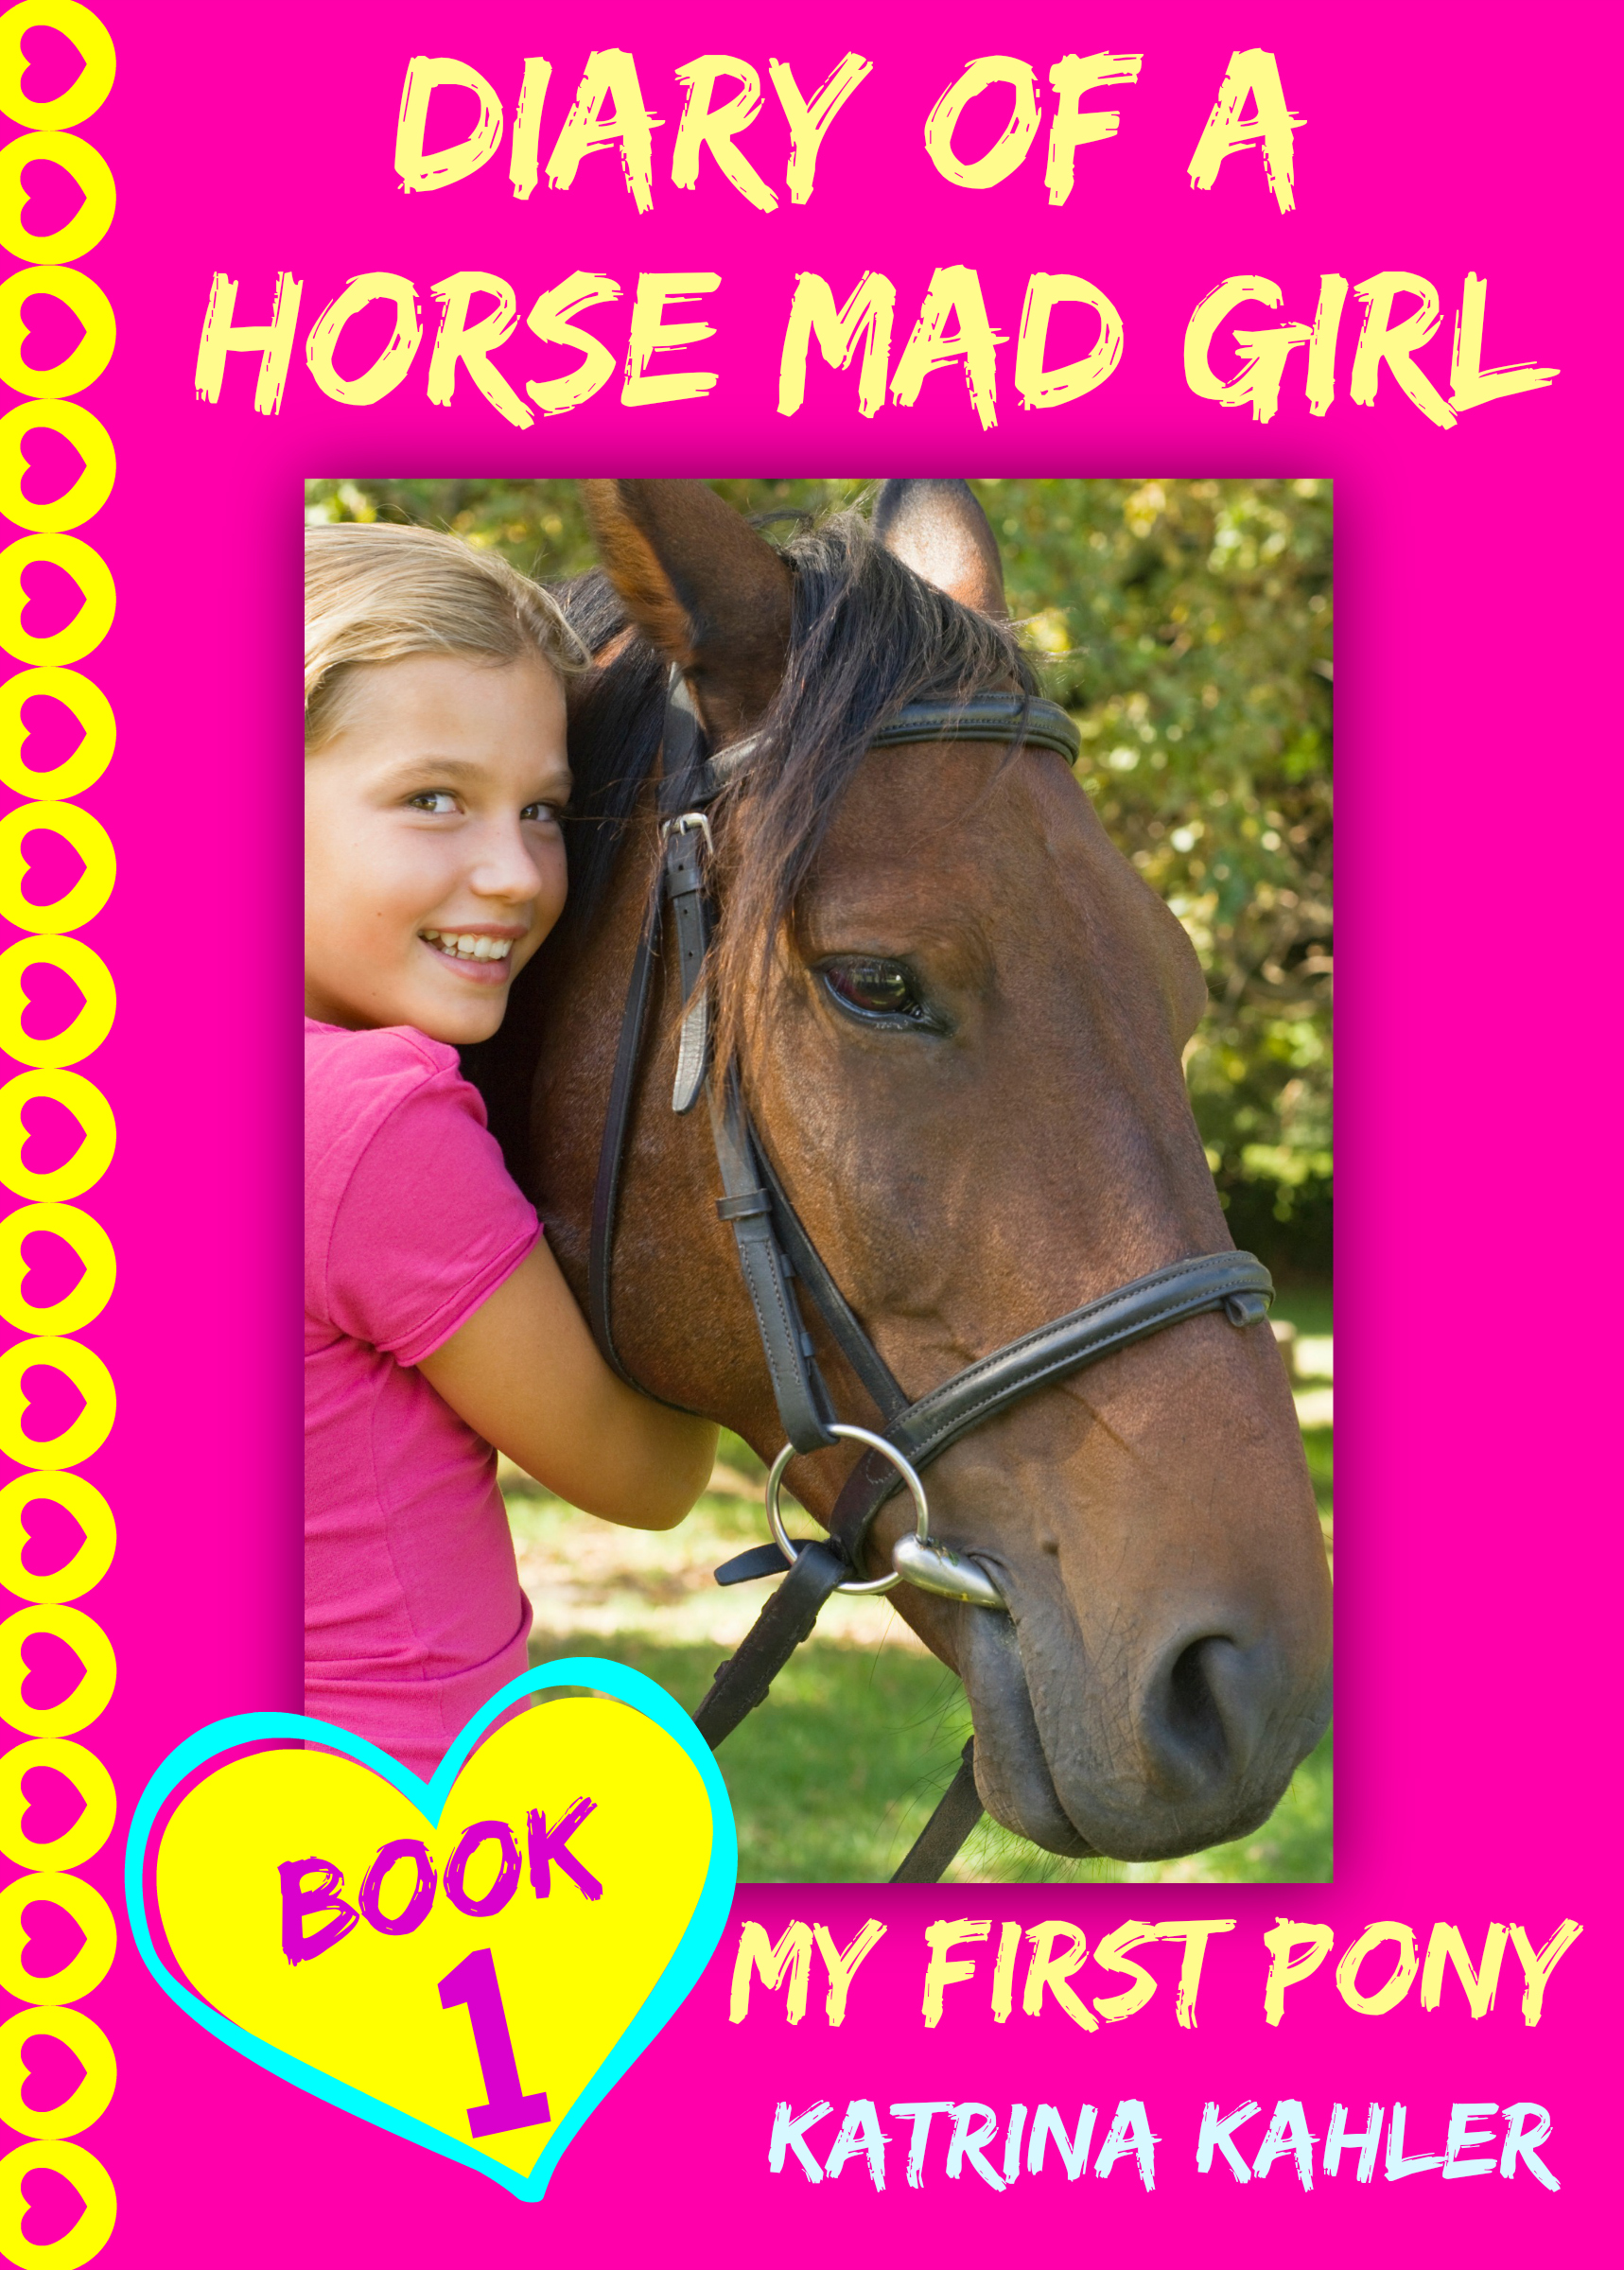 Diary of a horse mad girl - my first pony - book 1